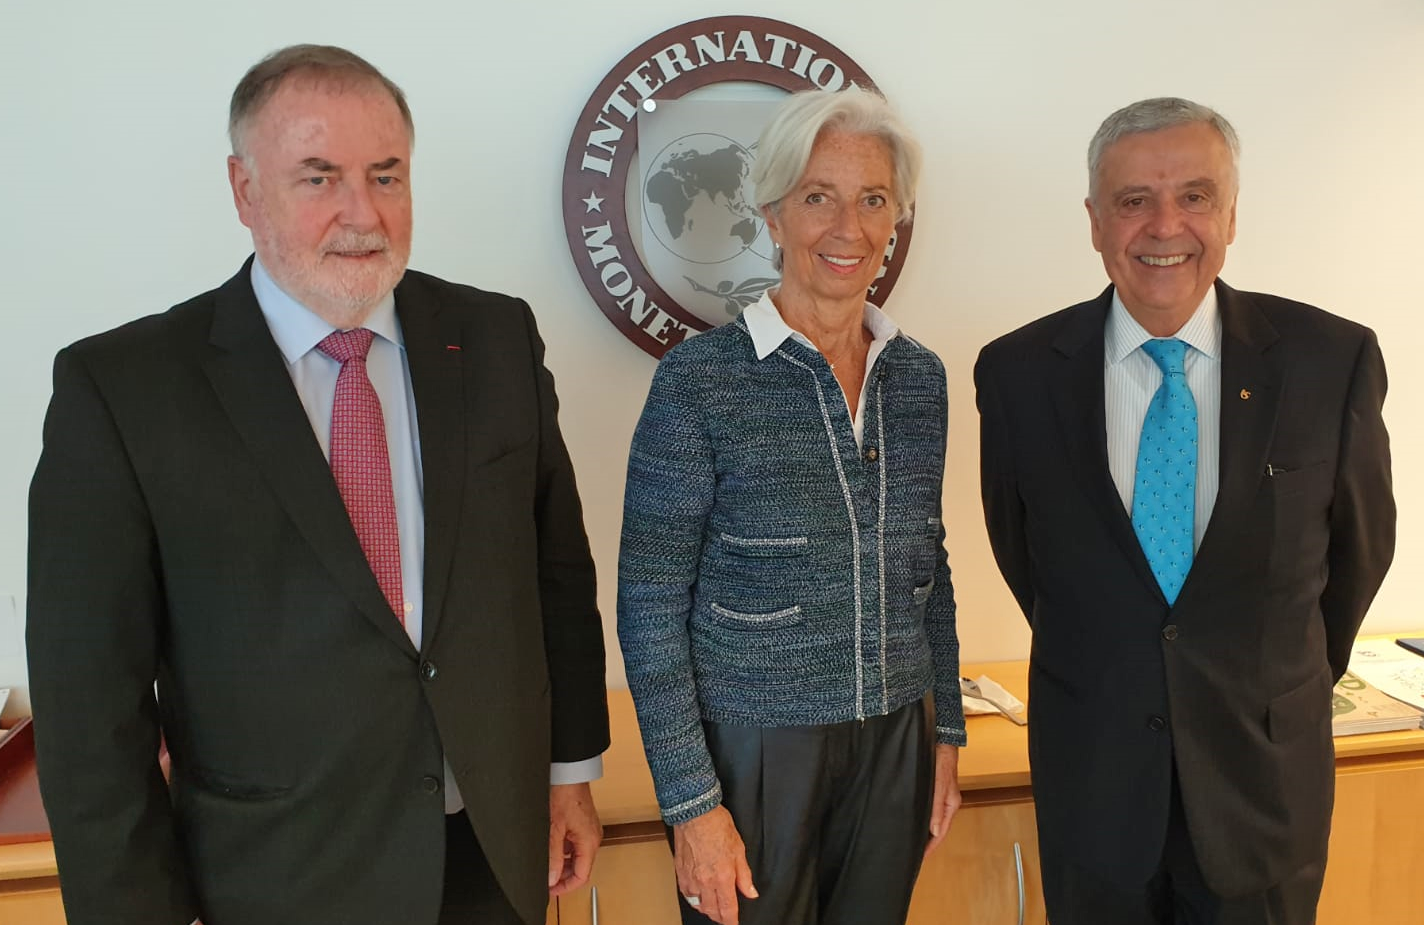 World Water Council President Loic Fauchon and Honorary President Benedito Braga meet Managing Director and Chairwoman of the International Monetary Fund Christine Lagarde, IMF Headquarters, Washington D.C., 4 April 2019